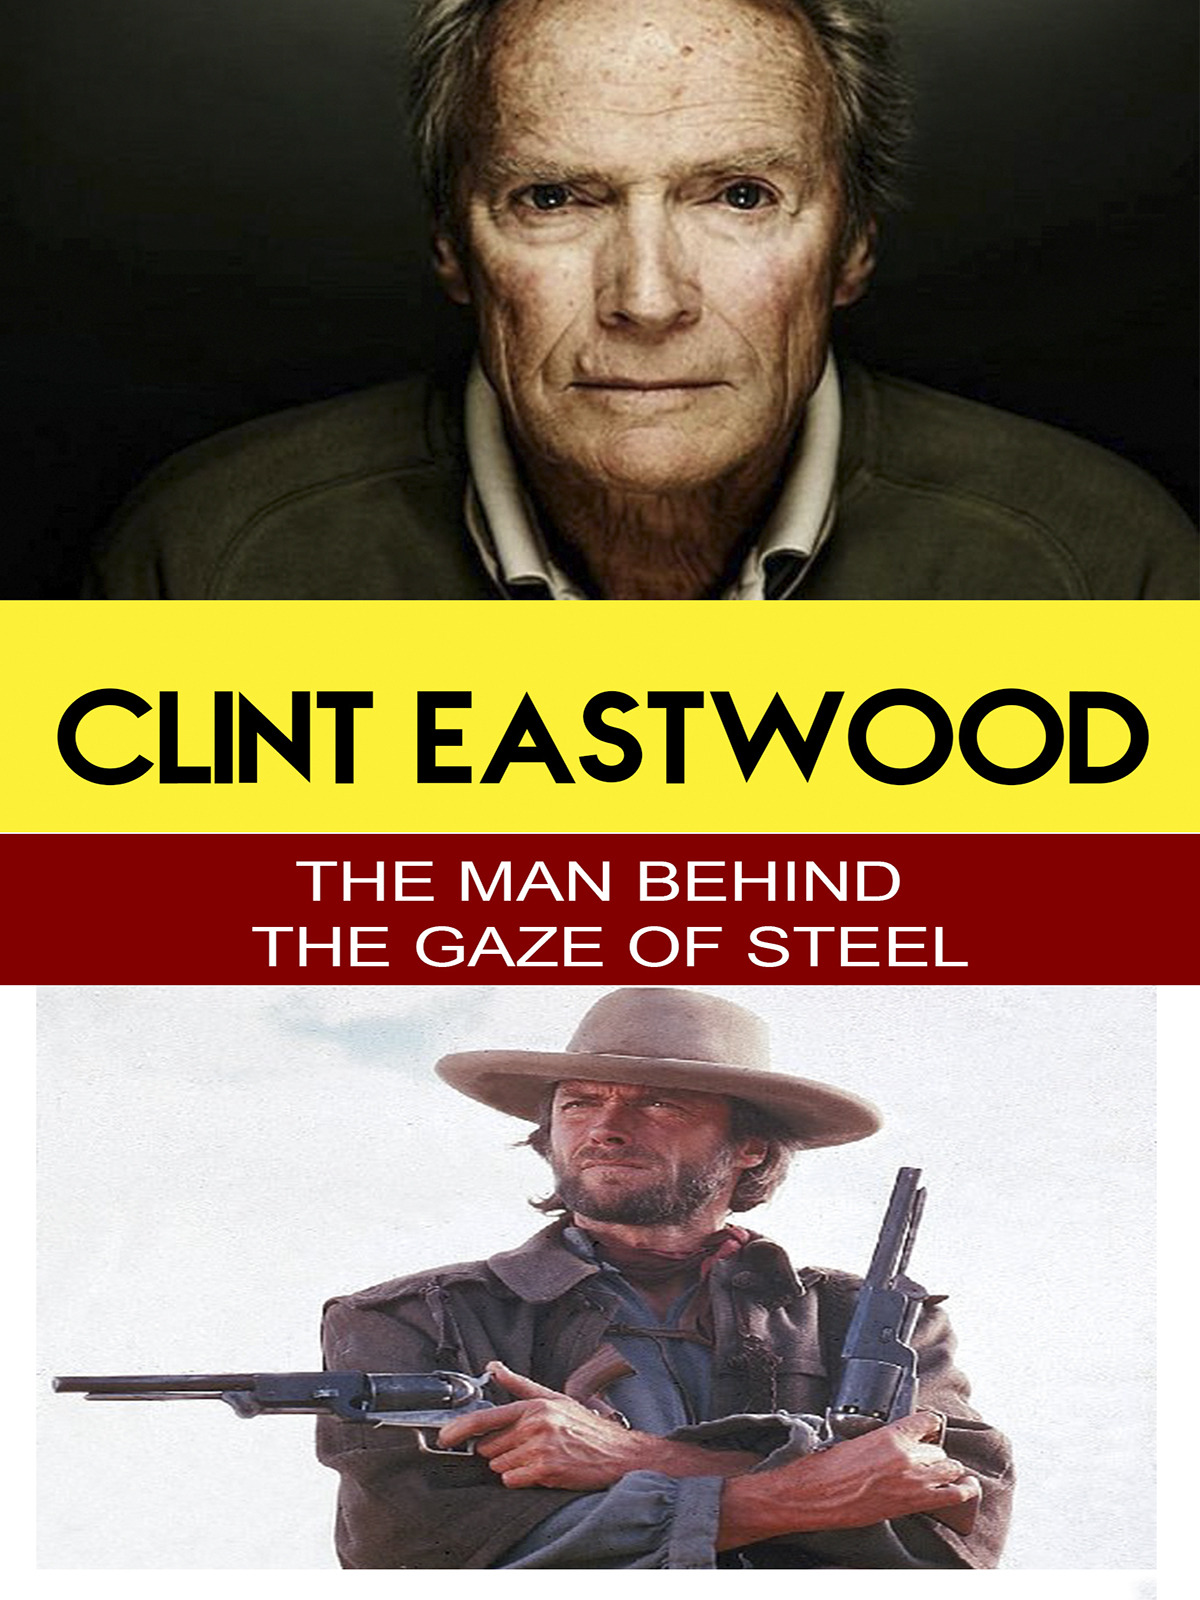 L7827 - Clint Eastwood - The Man Behind the Gaze of Steel